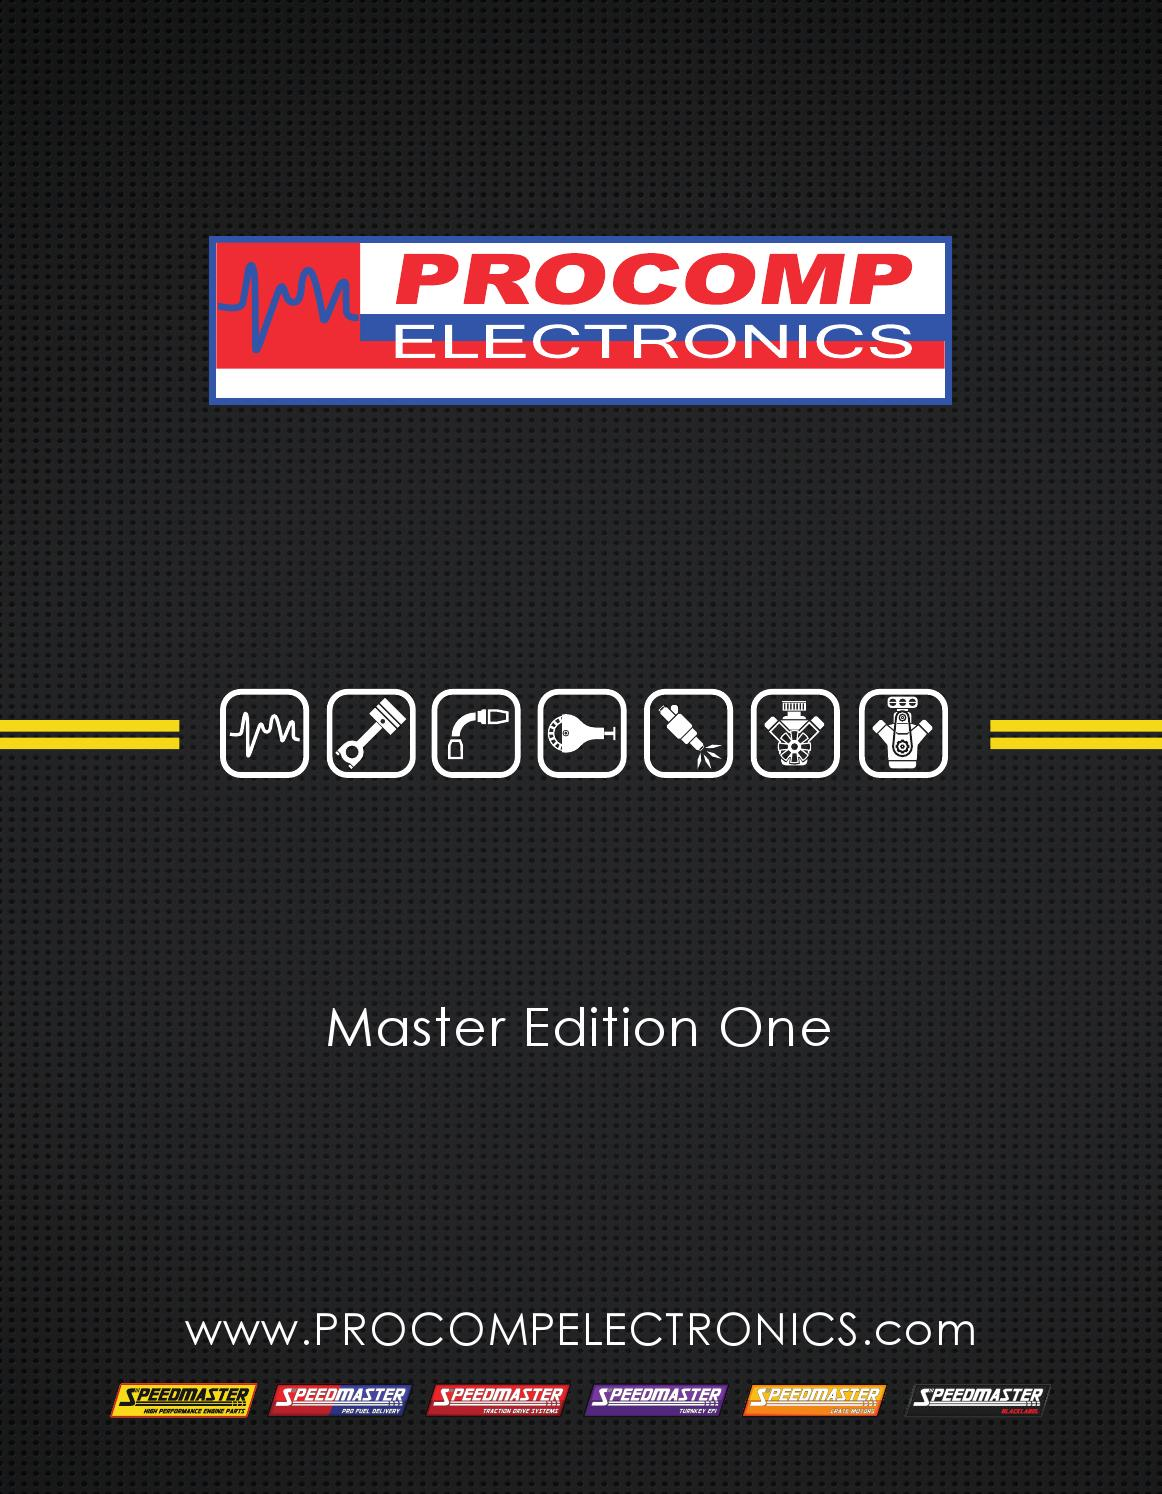 Procomp Electronics Catalog - Master Edition One by Studio